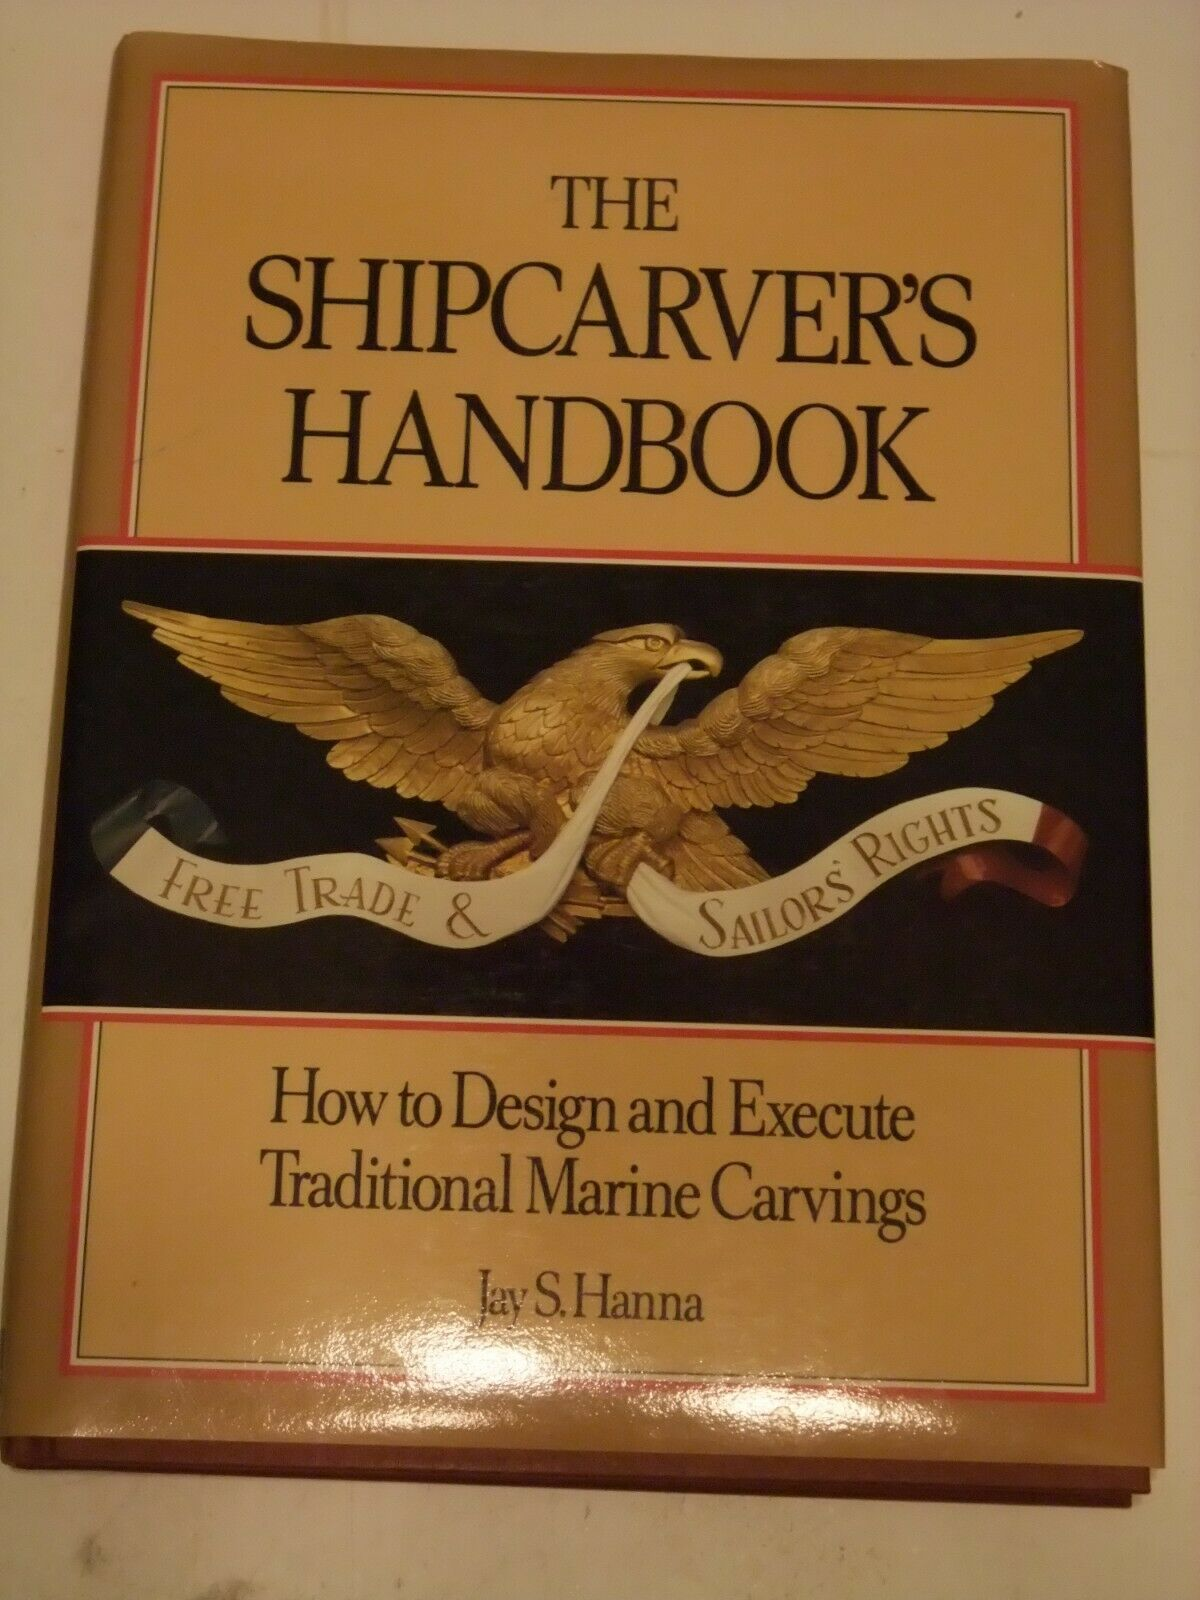 Primary image for The Shipcarver's Handbook: How to Design and Execute Traditional Marine Carvings